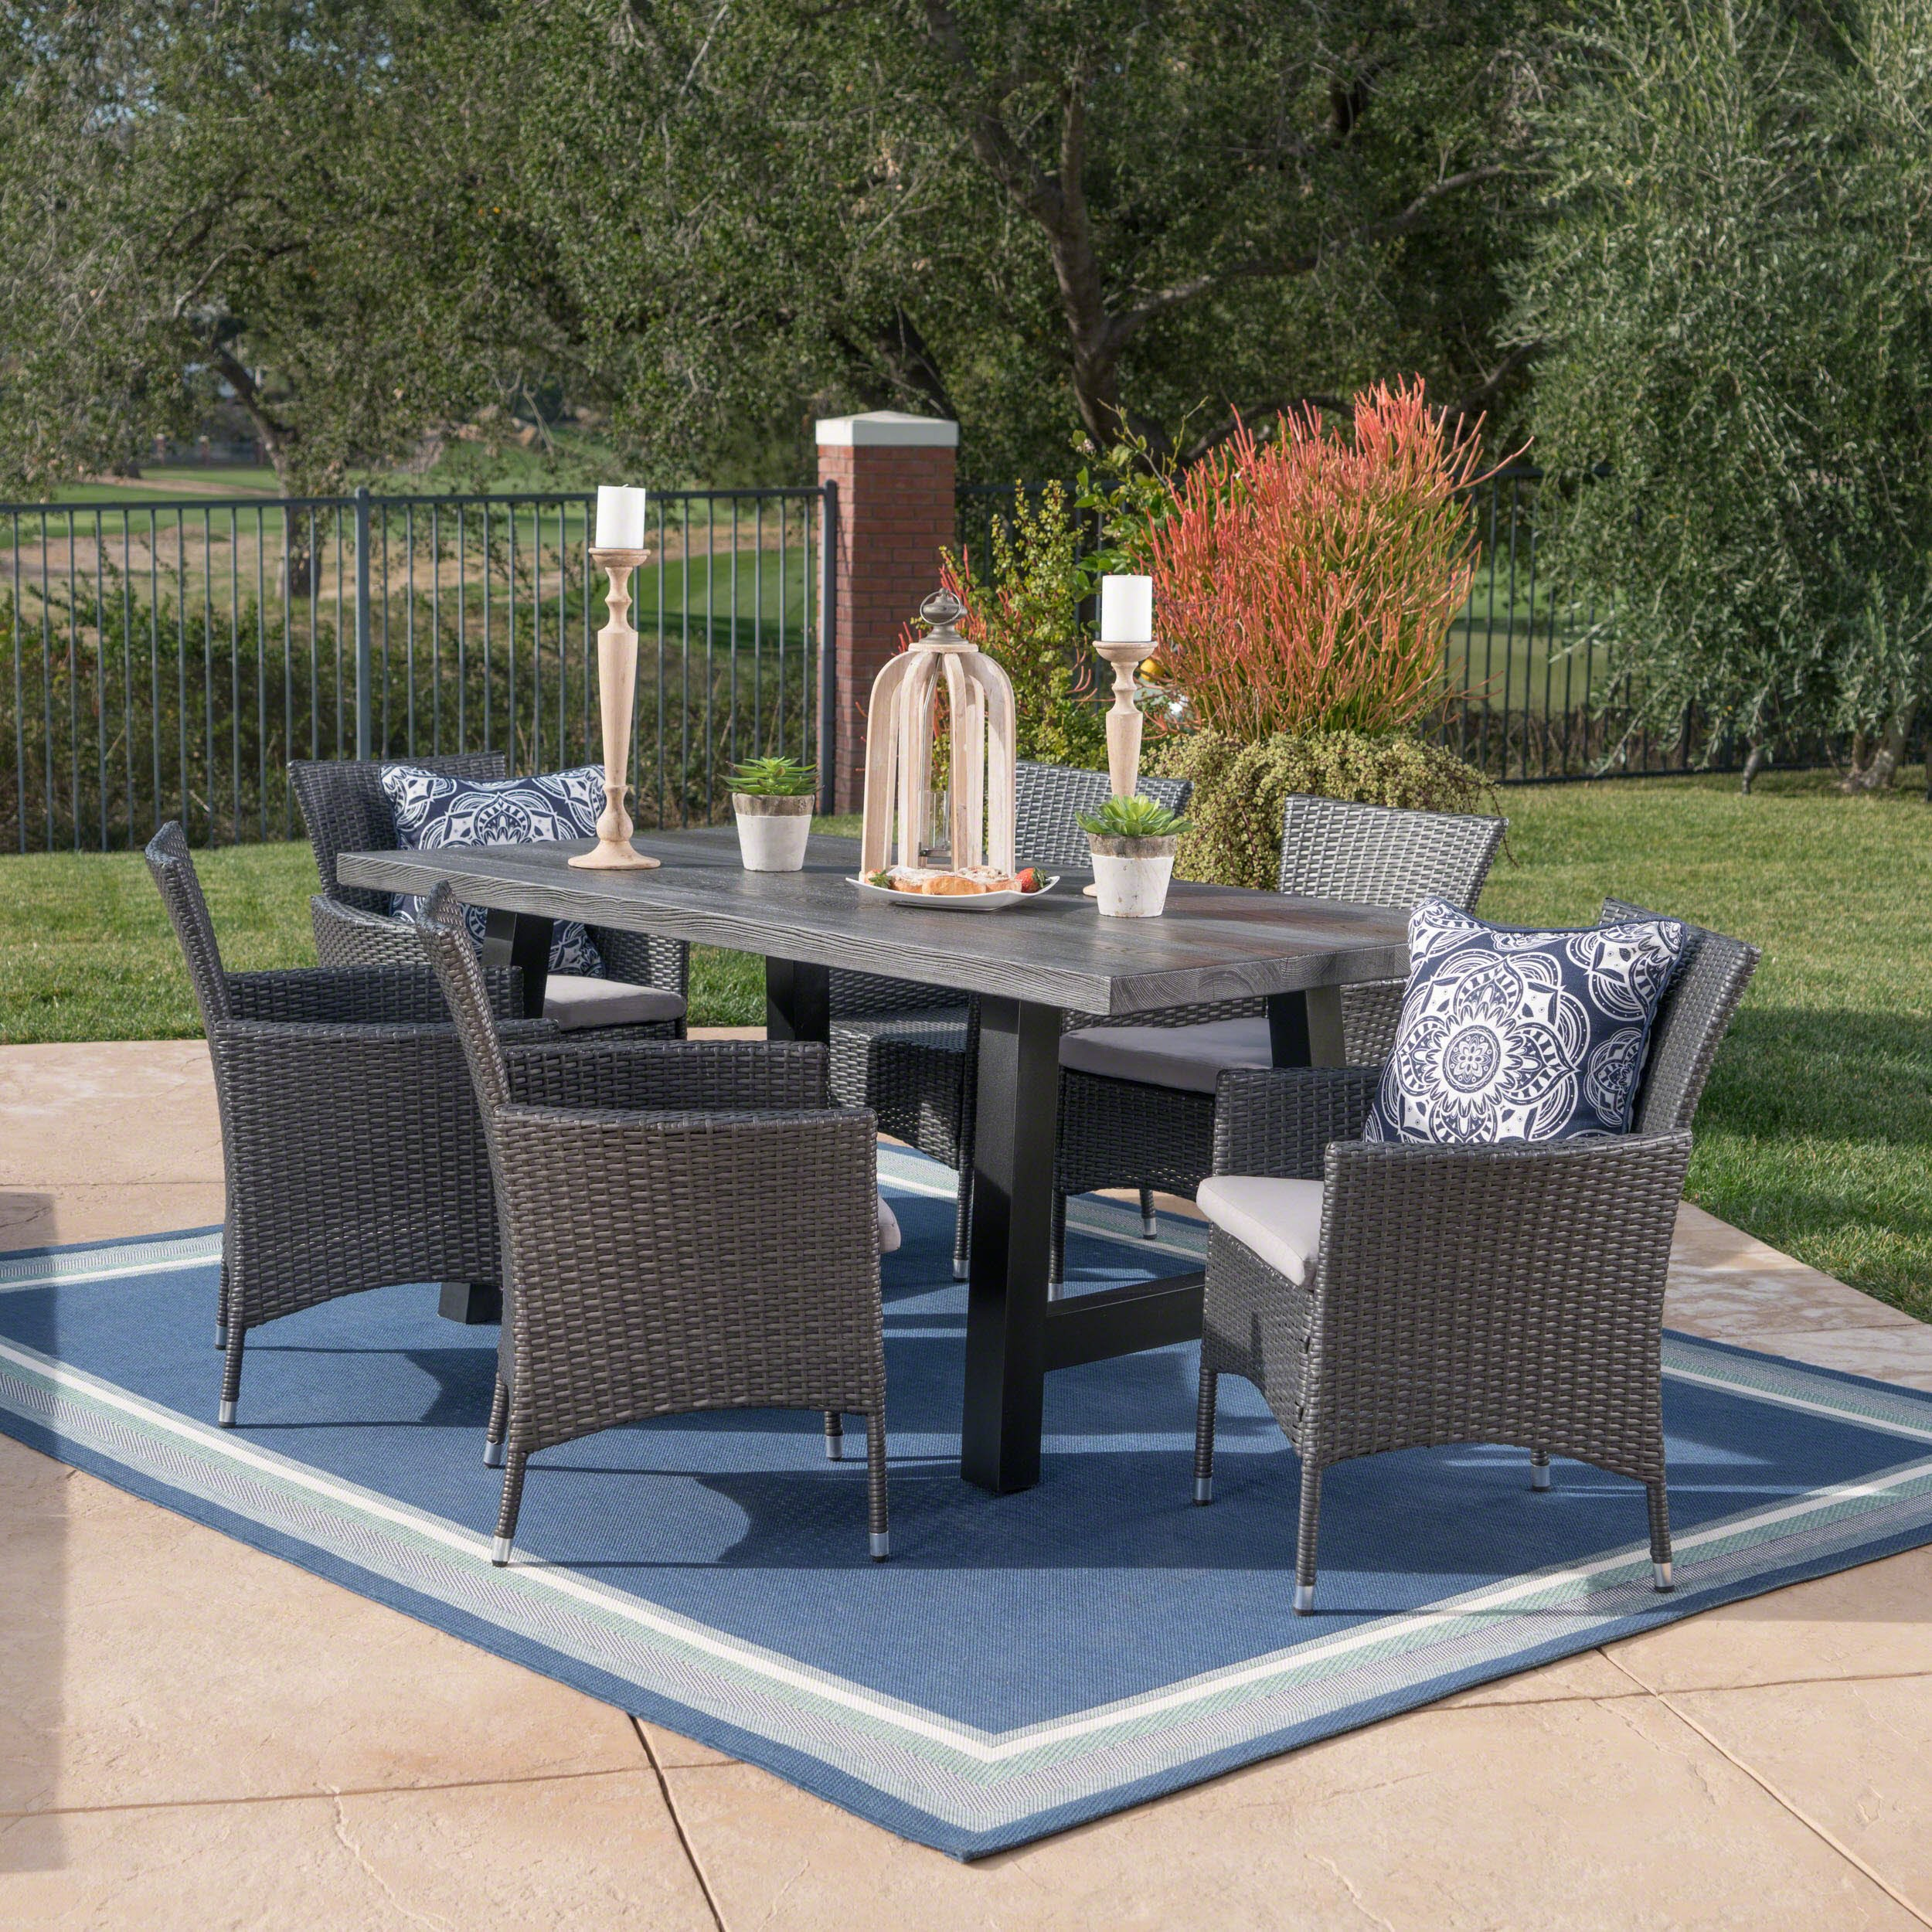 Gina Outdoor 7 Piece Grey Wicker Dining Set with Natural Grey Finish Light Weight Concrete Table and Silver Water Resistant Cushions by Great Deal Furniture